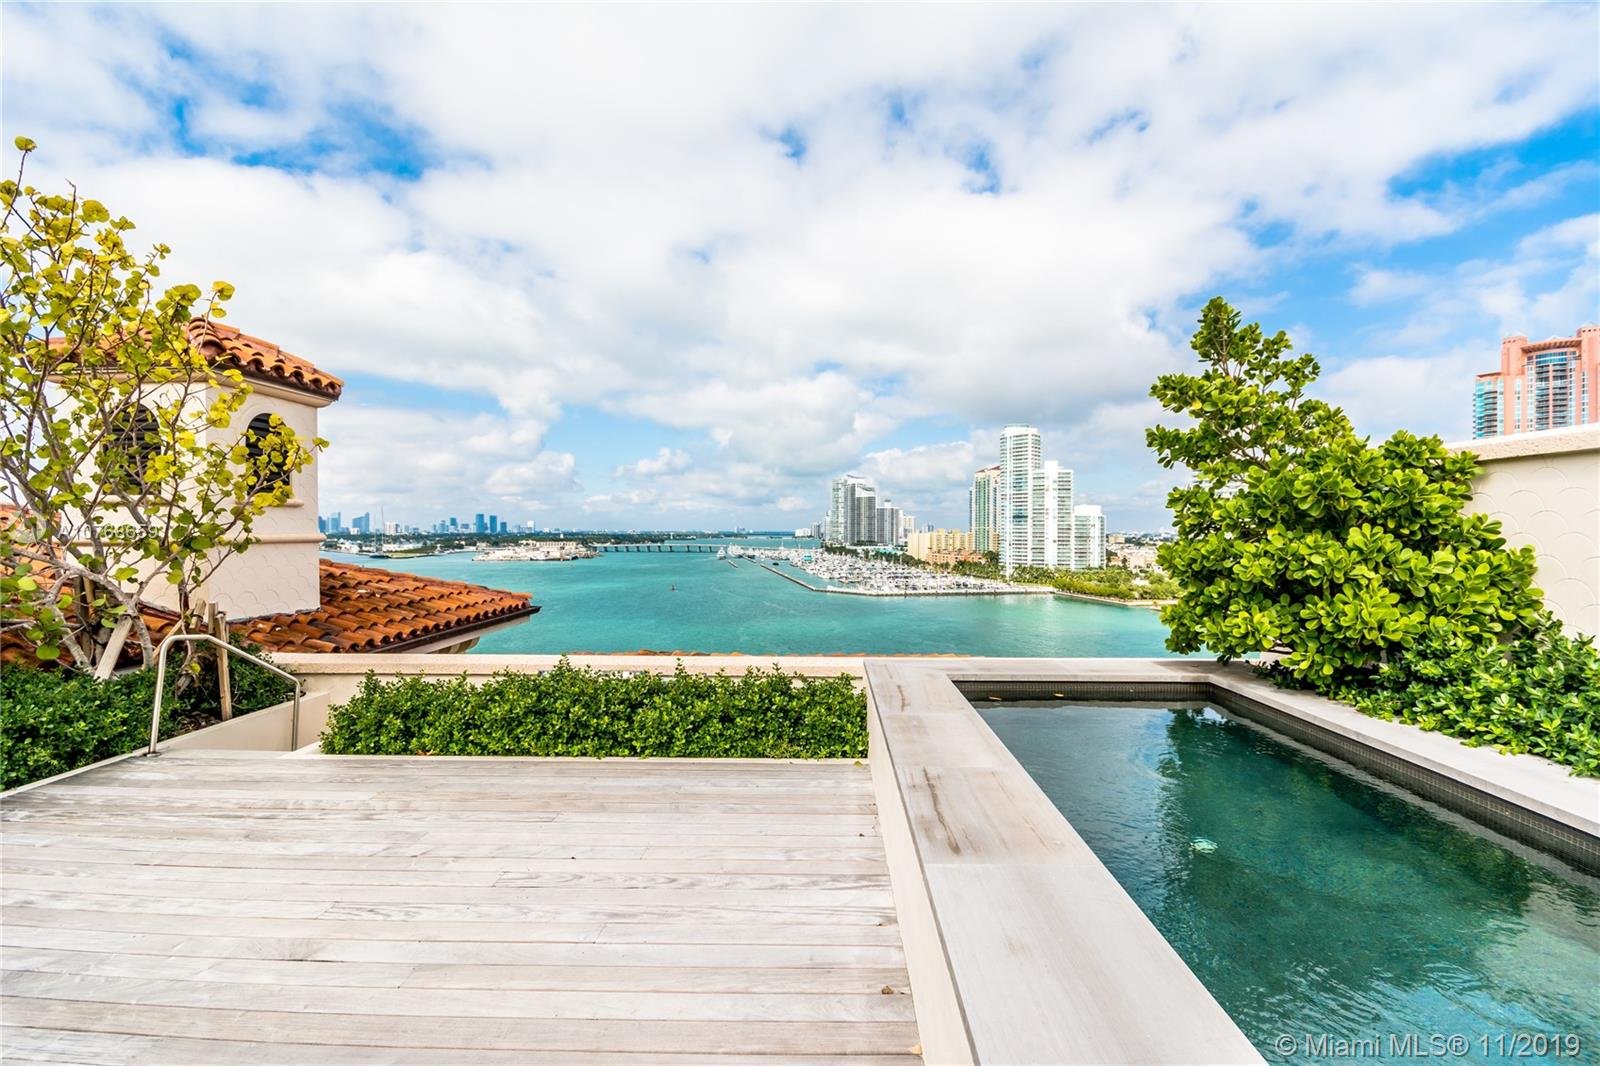 7001 Fisher Island Drive, Unit #7001 Luxury Real Estate